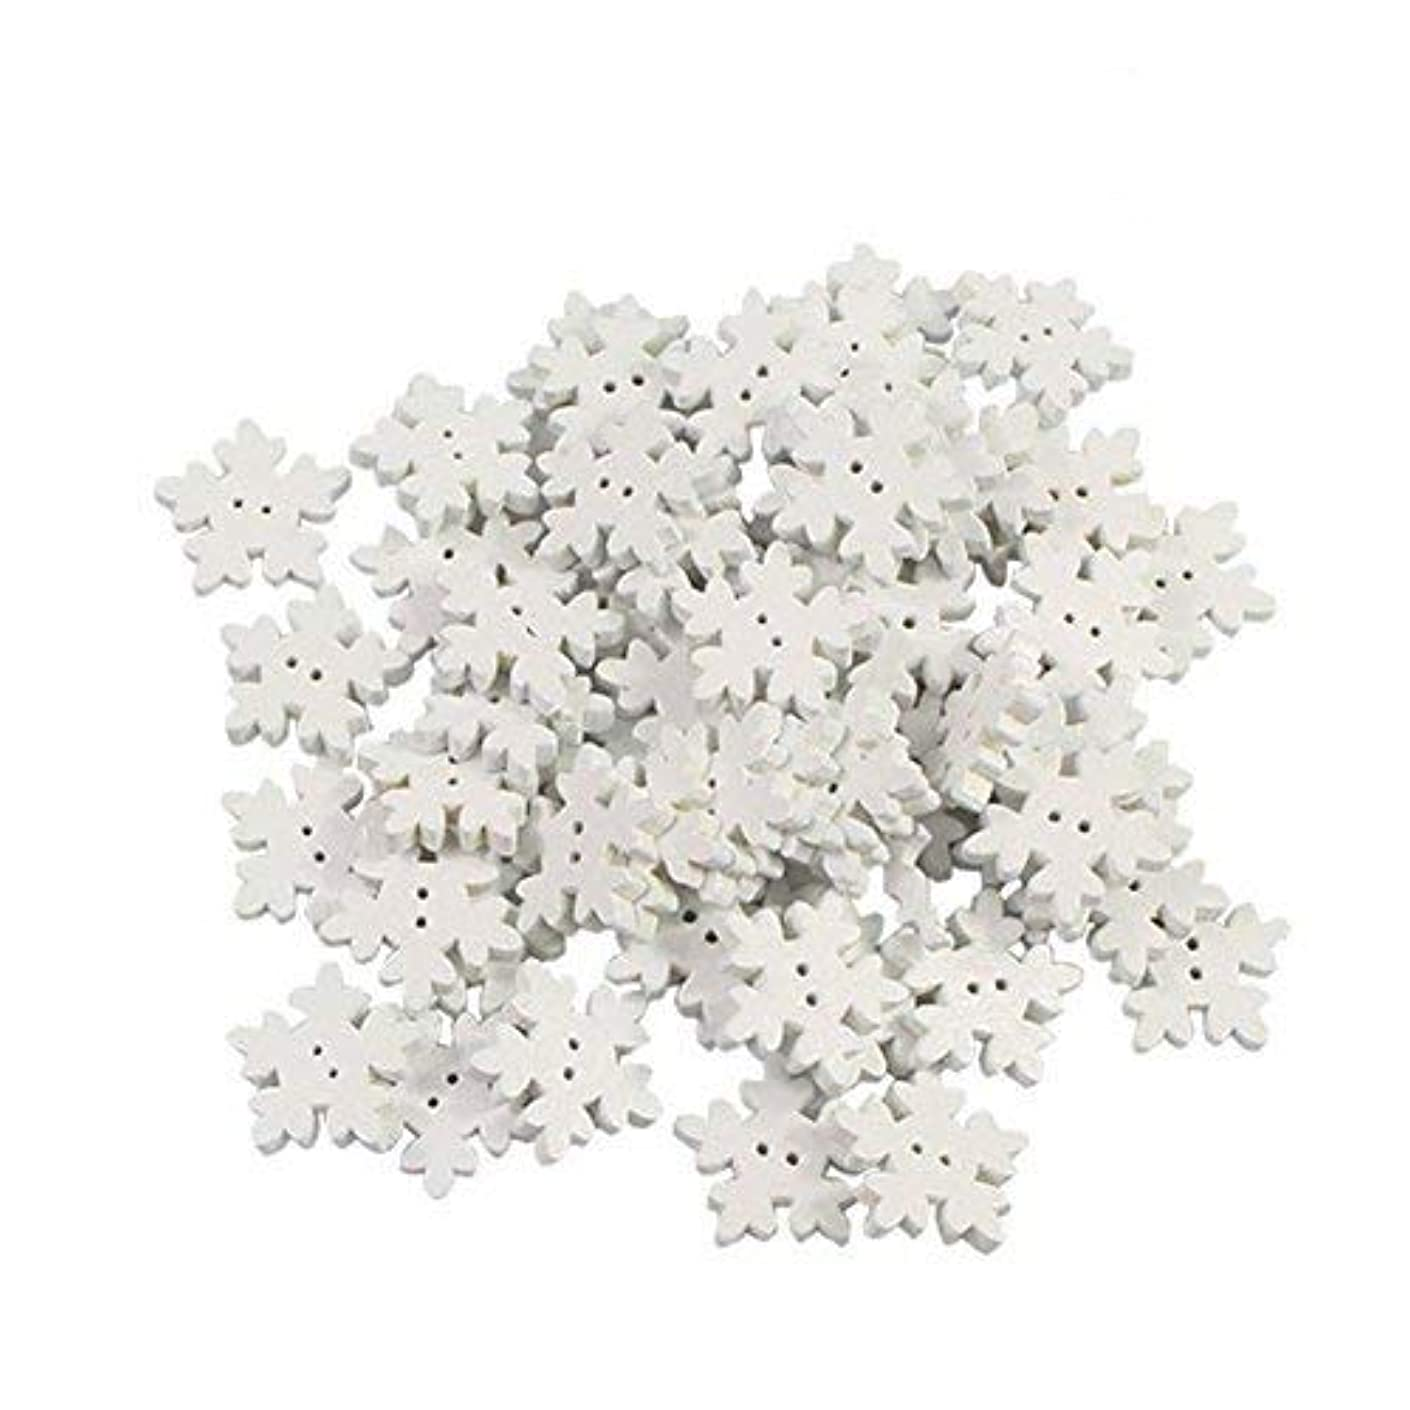 Velidy 100Pcs Wooden Snowflake Buttons White Mini Buttons Decoration for DIY Scrapbooking Craft